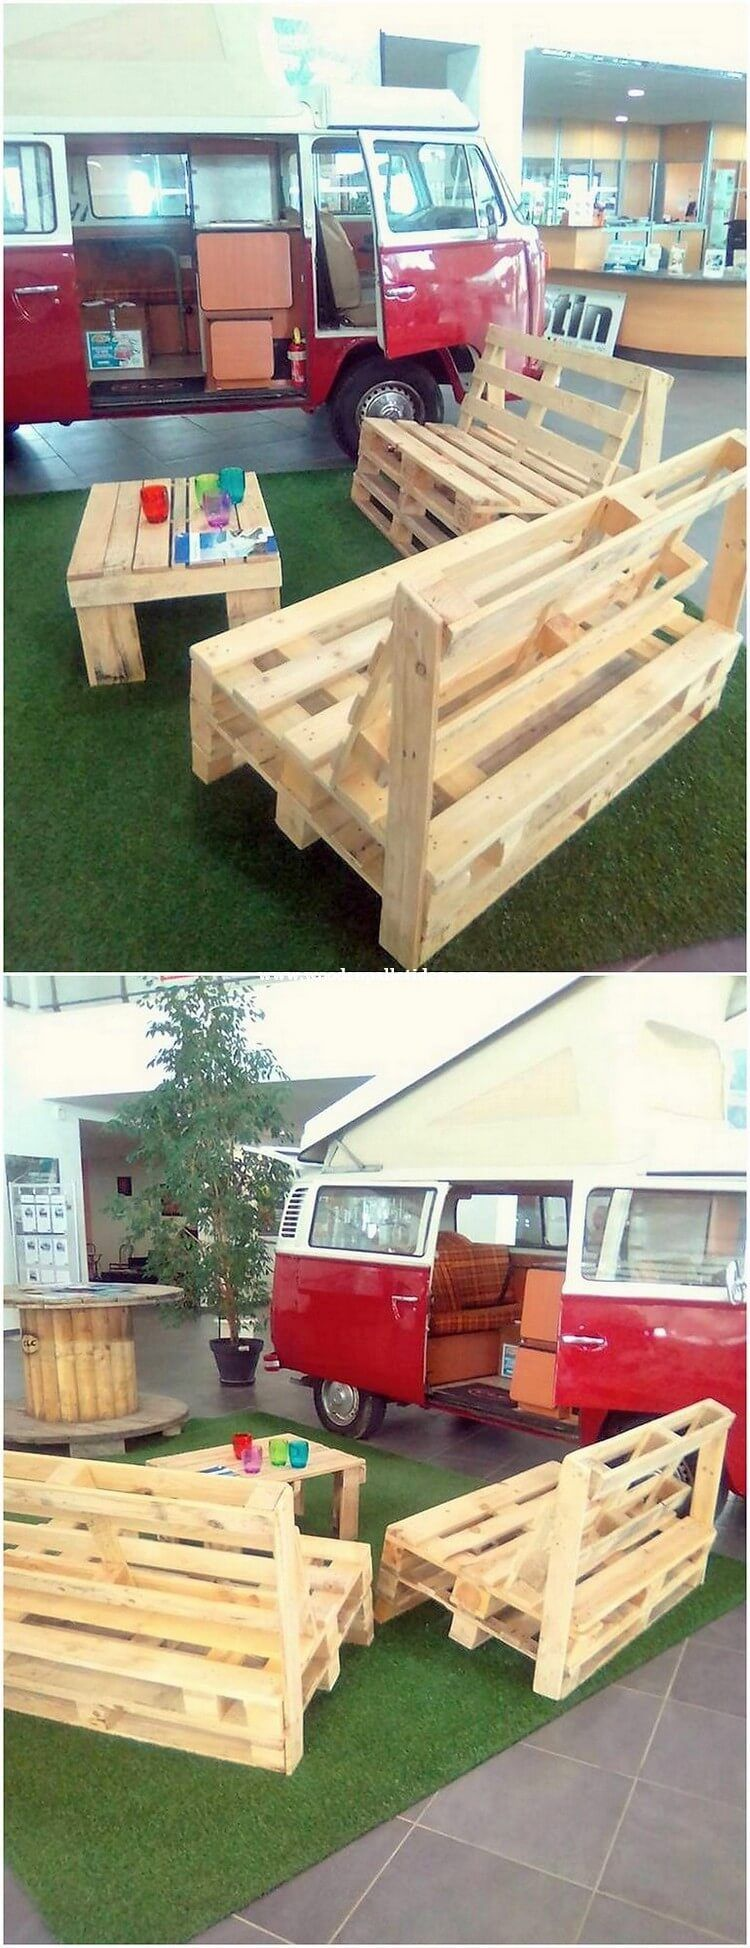 Diy recycled and reused wood pallet projects pallet furniture